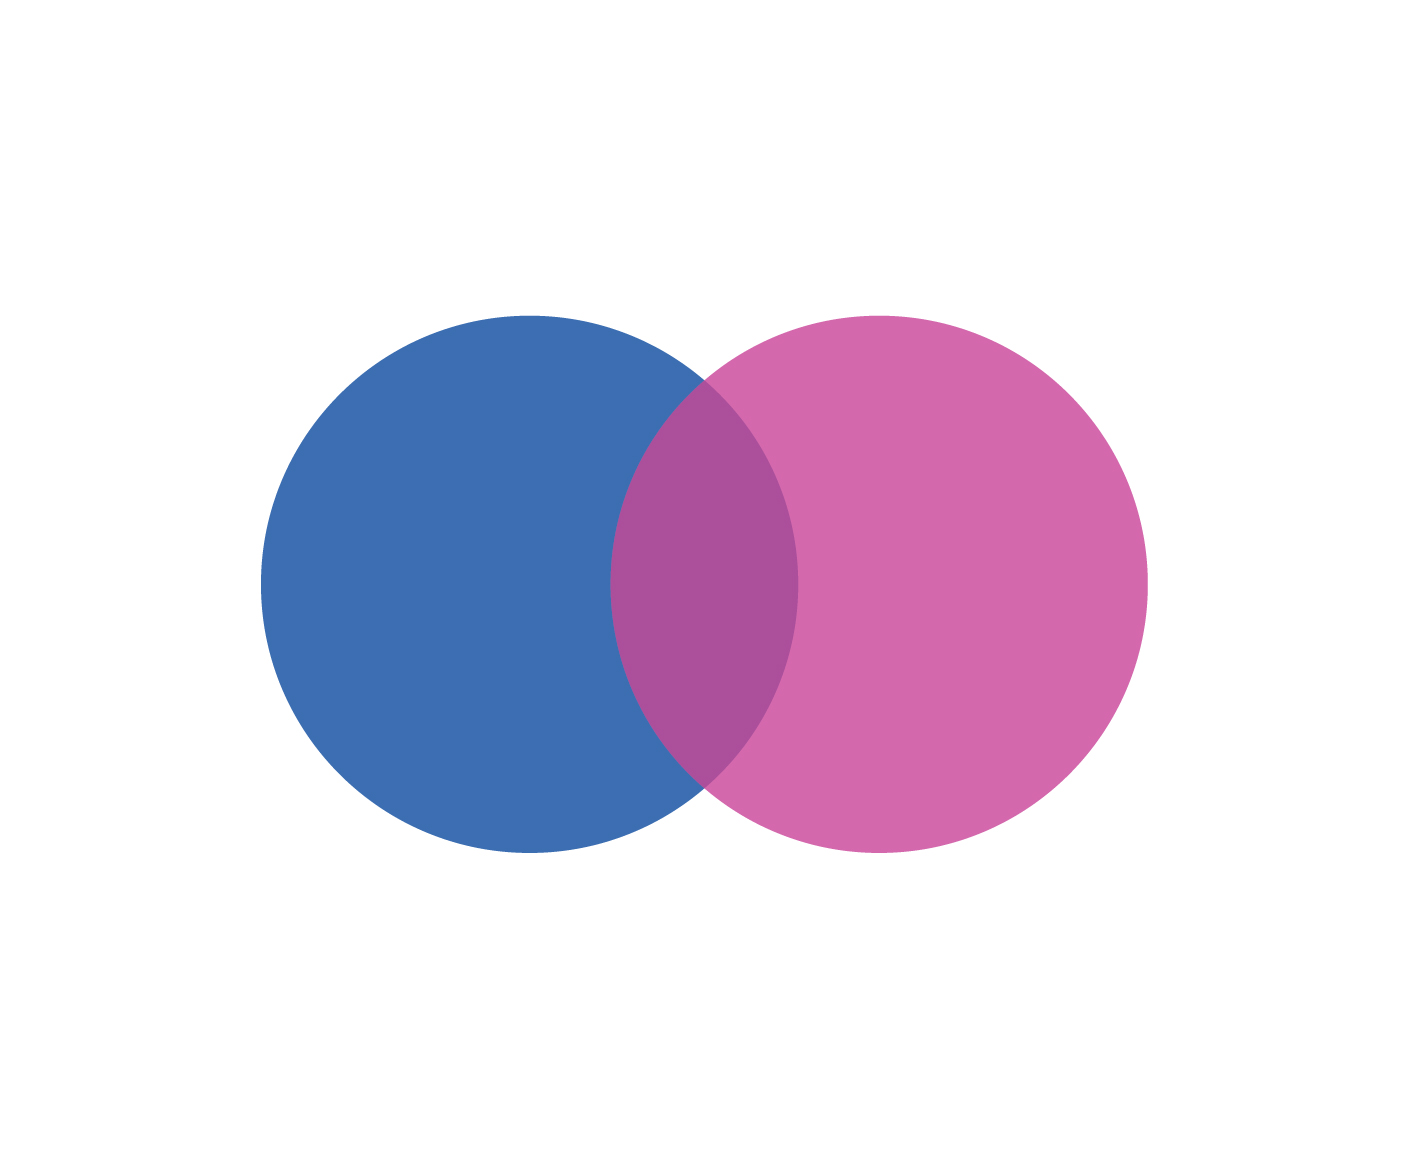 Two-Set Venn Diagram